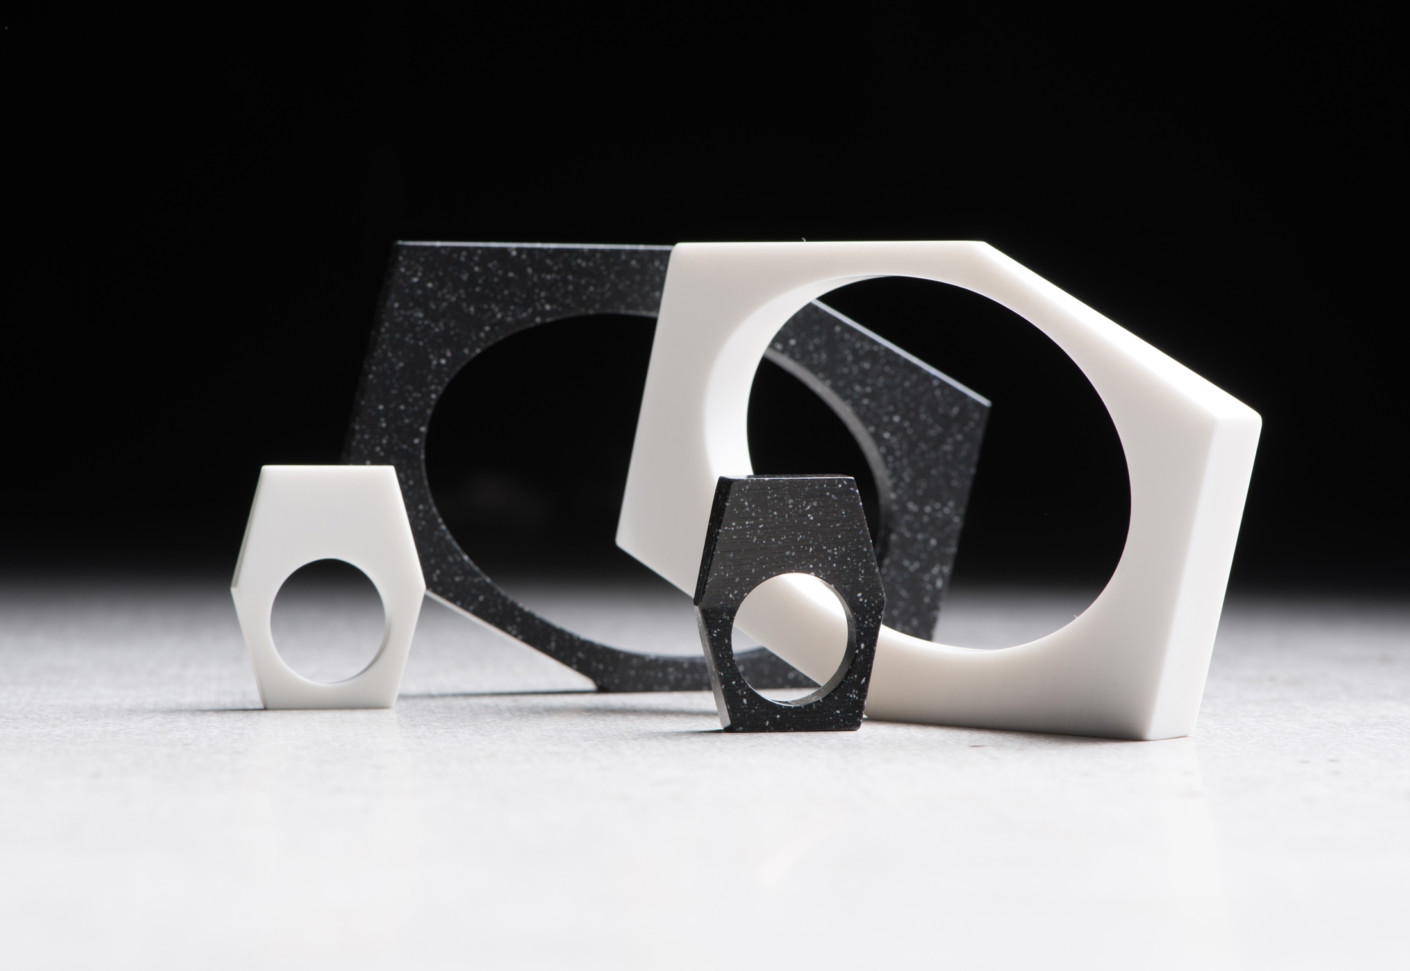 DuPont Corian Jewellery From 13amp9 By DuPont Corian STYLEPARK